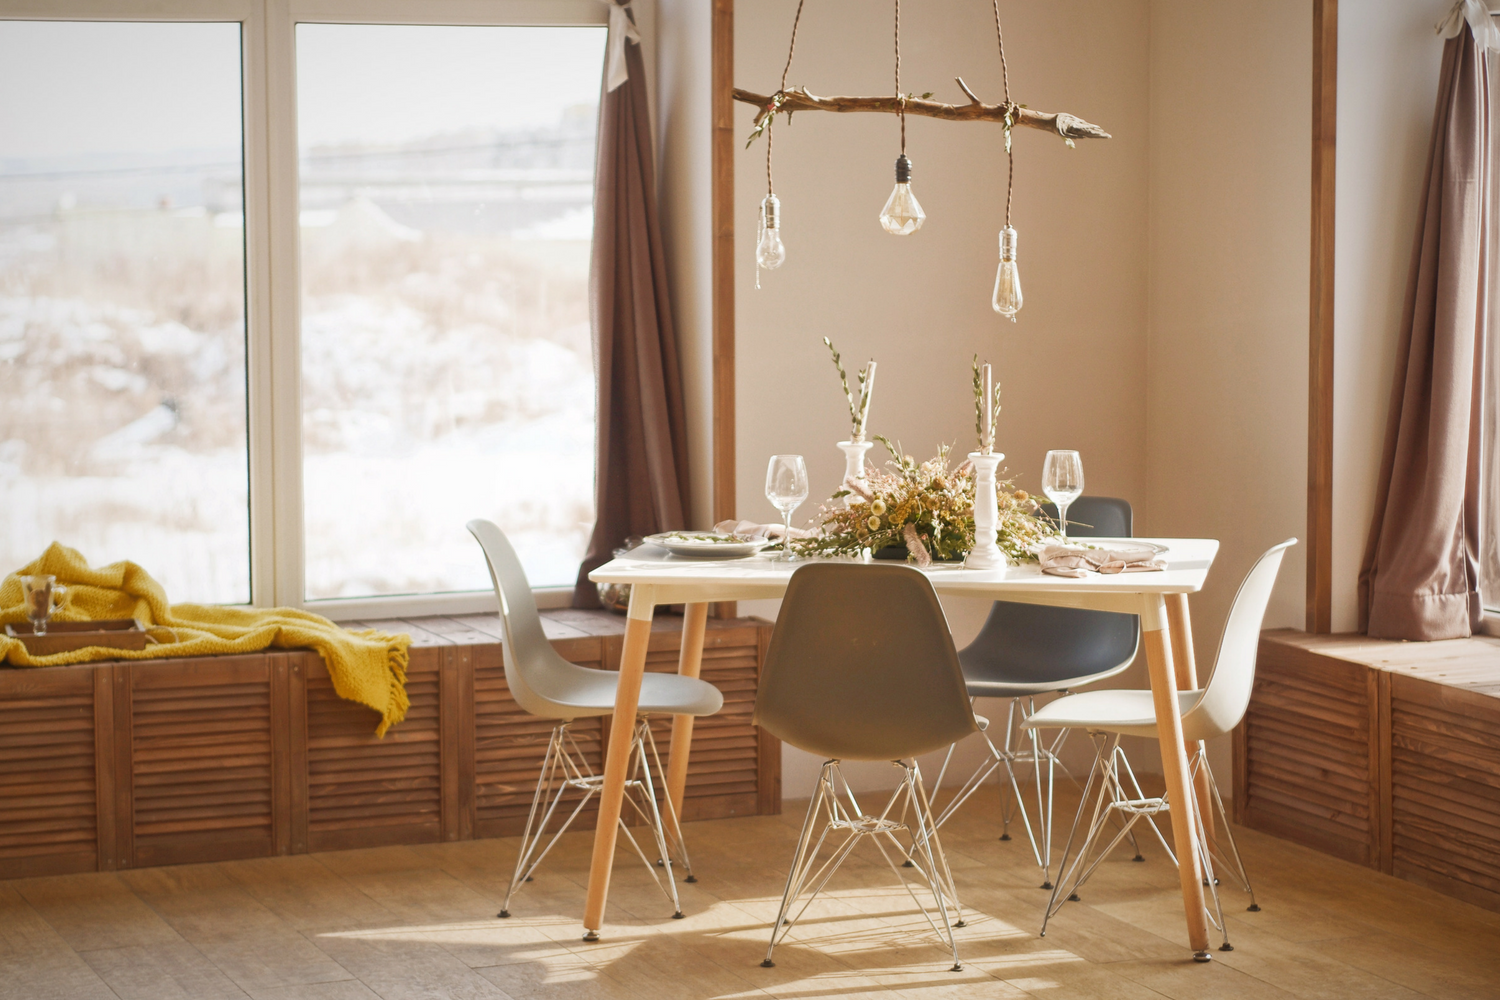 Warning These Are The Best Small Living Room Ideas Of The: Dining Room Inspiration: 10 Scandinavian Dining Room Ideas